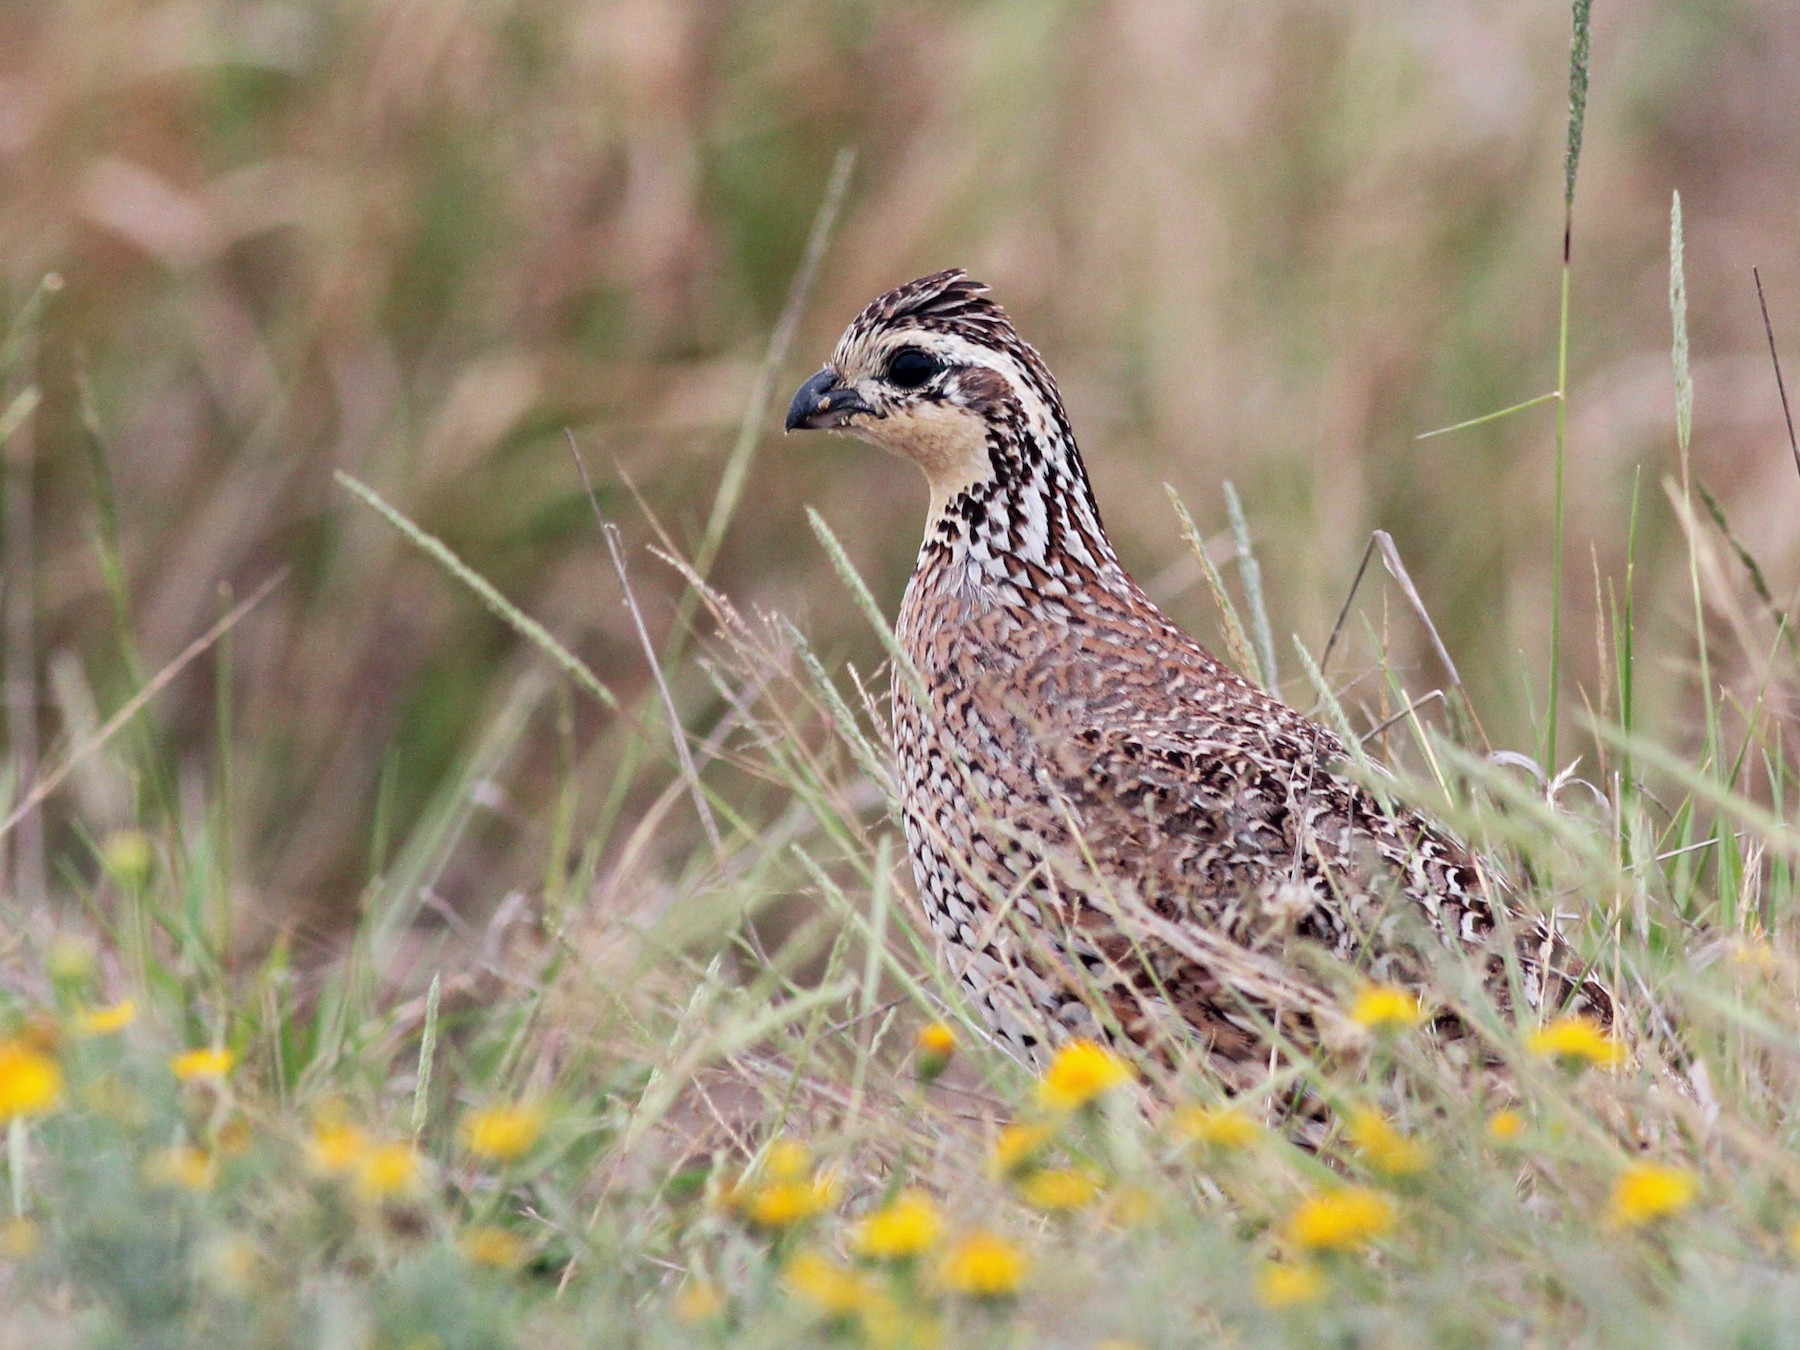 Northern Bobwhite - Shawn Billerman